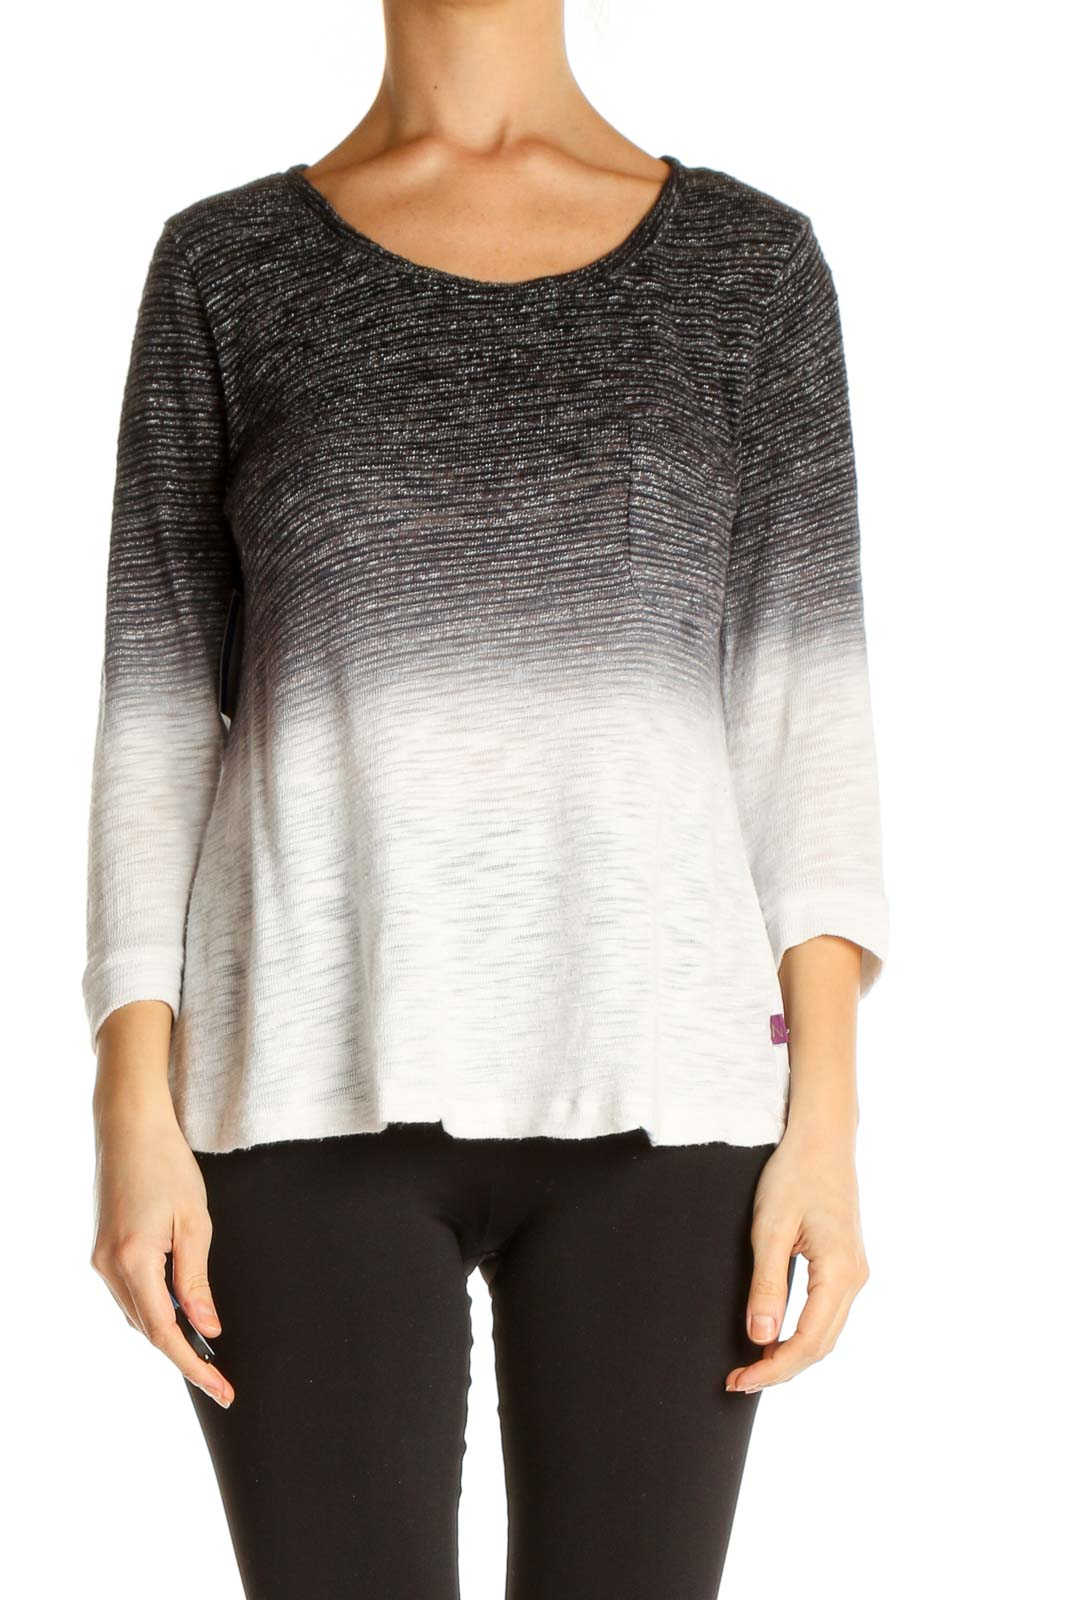 Black Textured All Day Wear Sweater Front